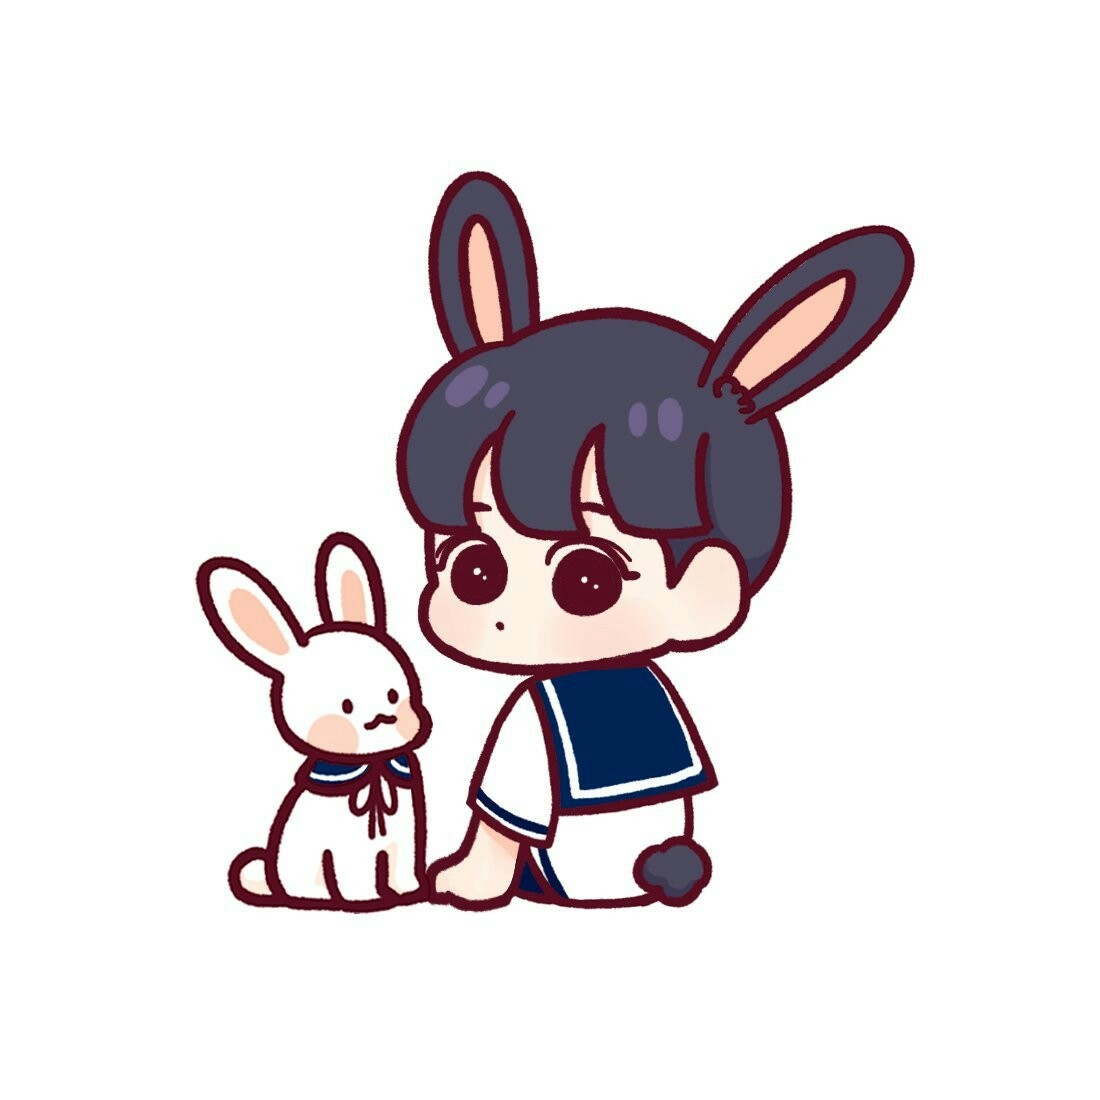 Uri Bunny C Haangnim Shared By H Park On We Heart It